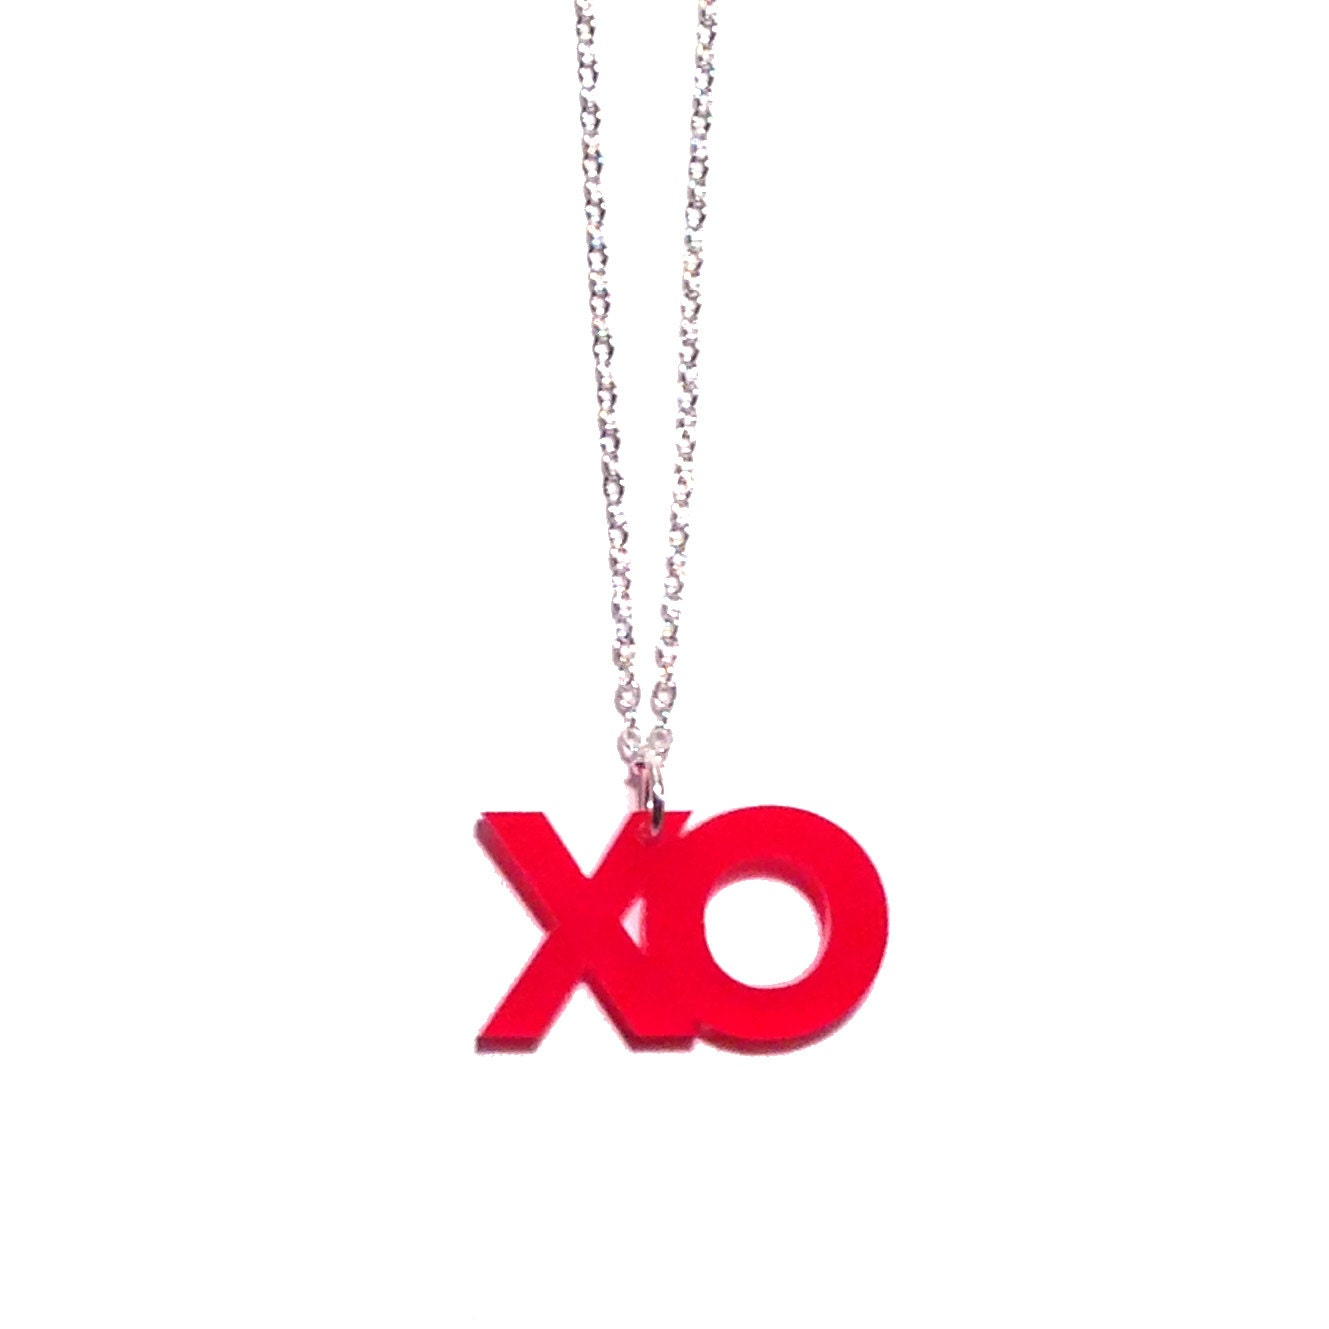 xo hugs and kisses necklace (red) - plastique